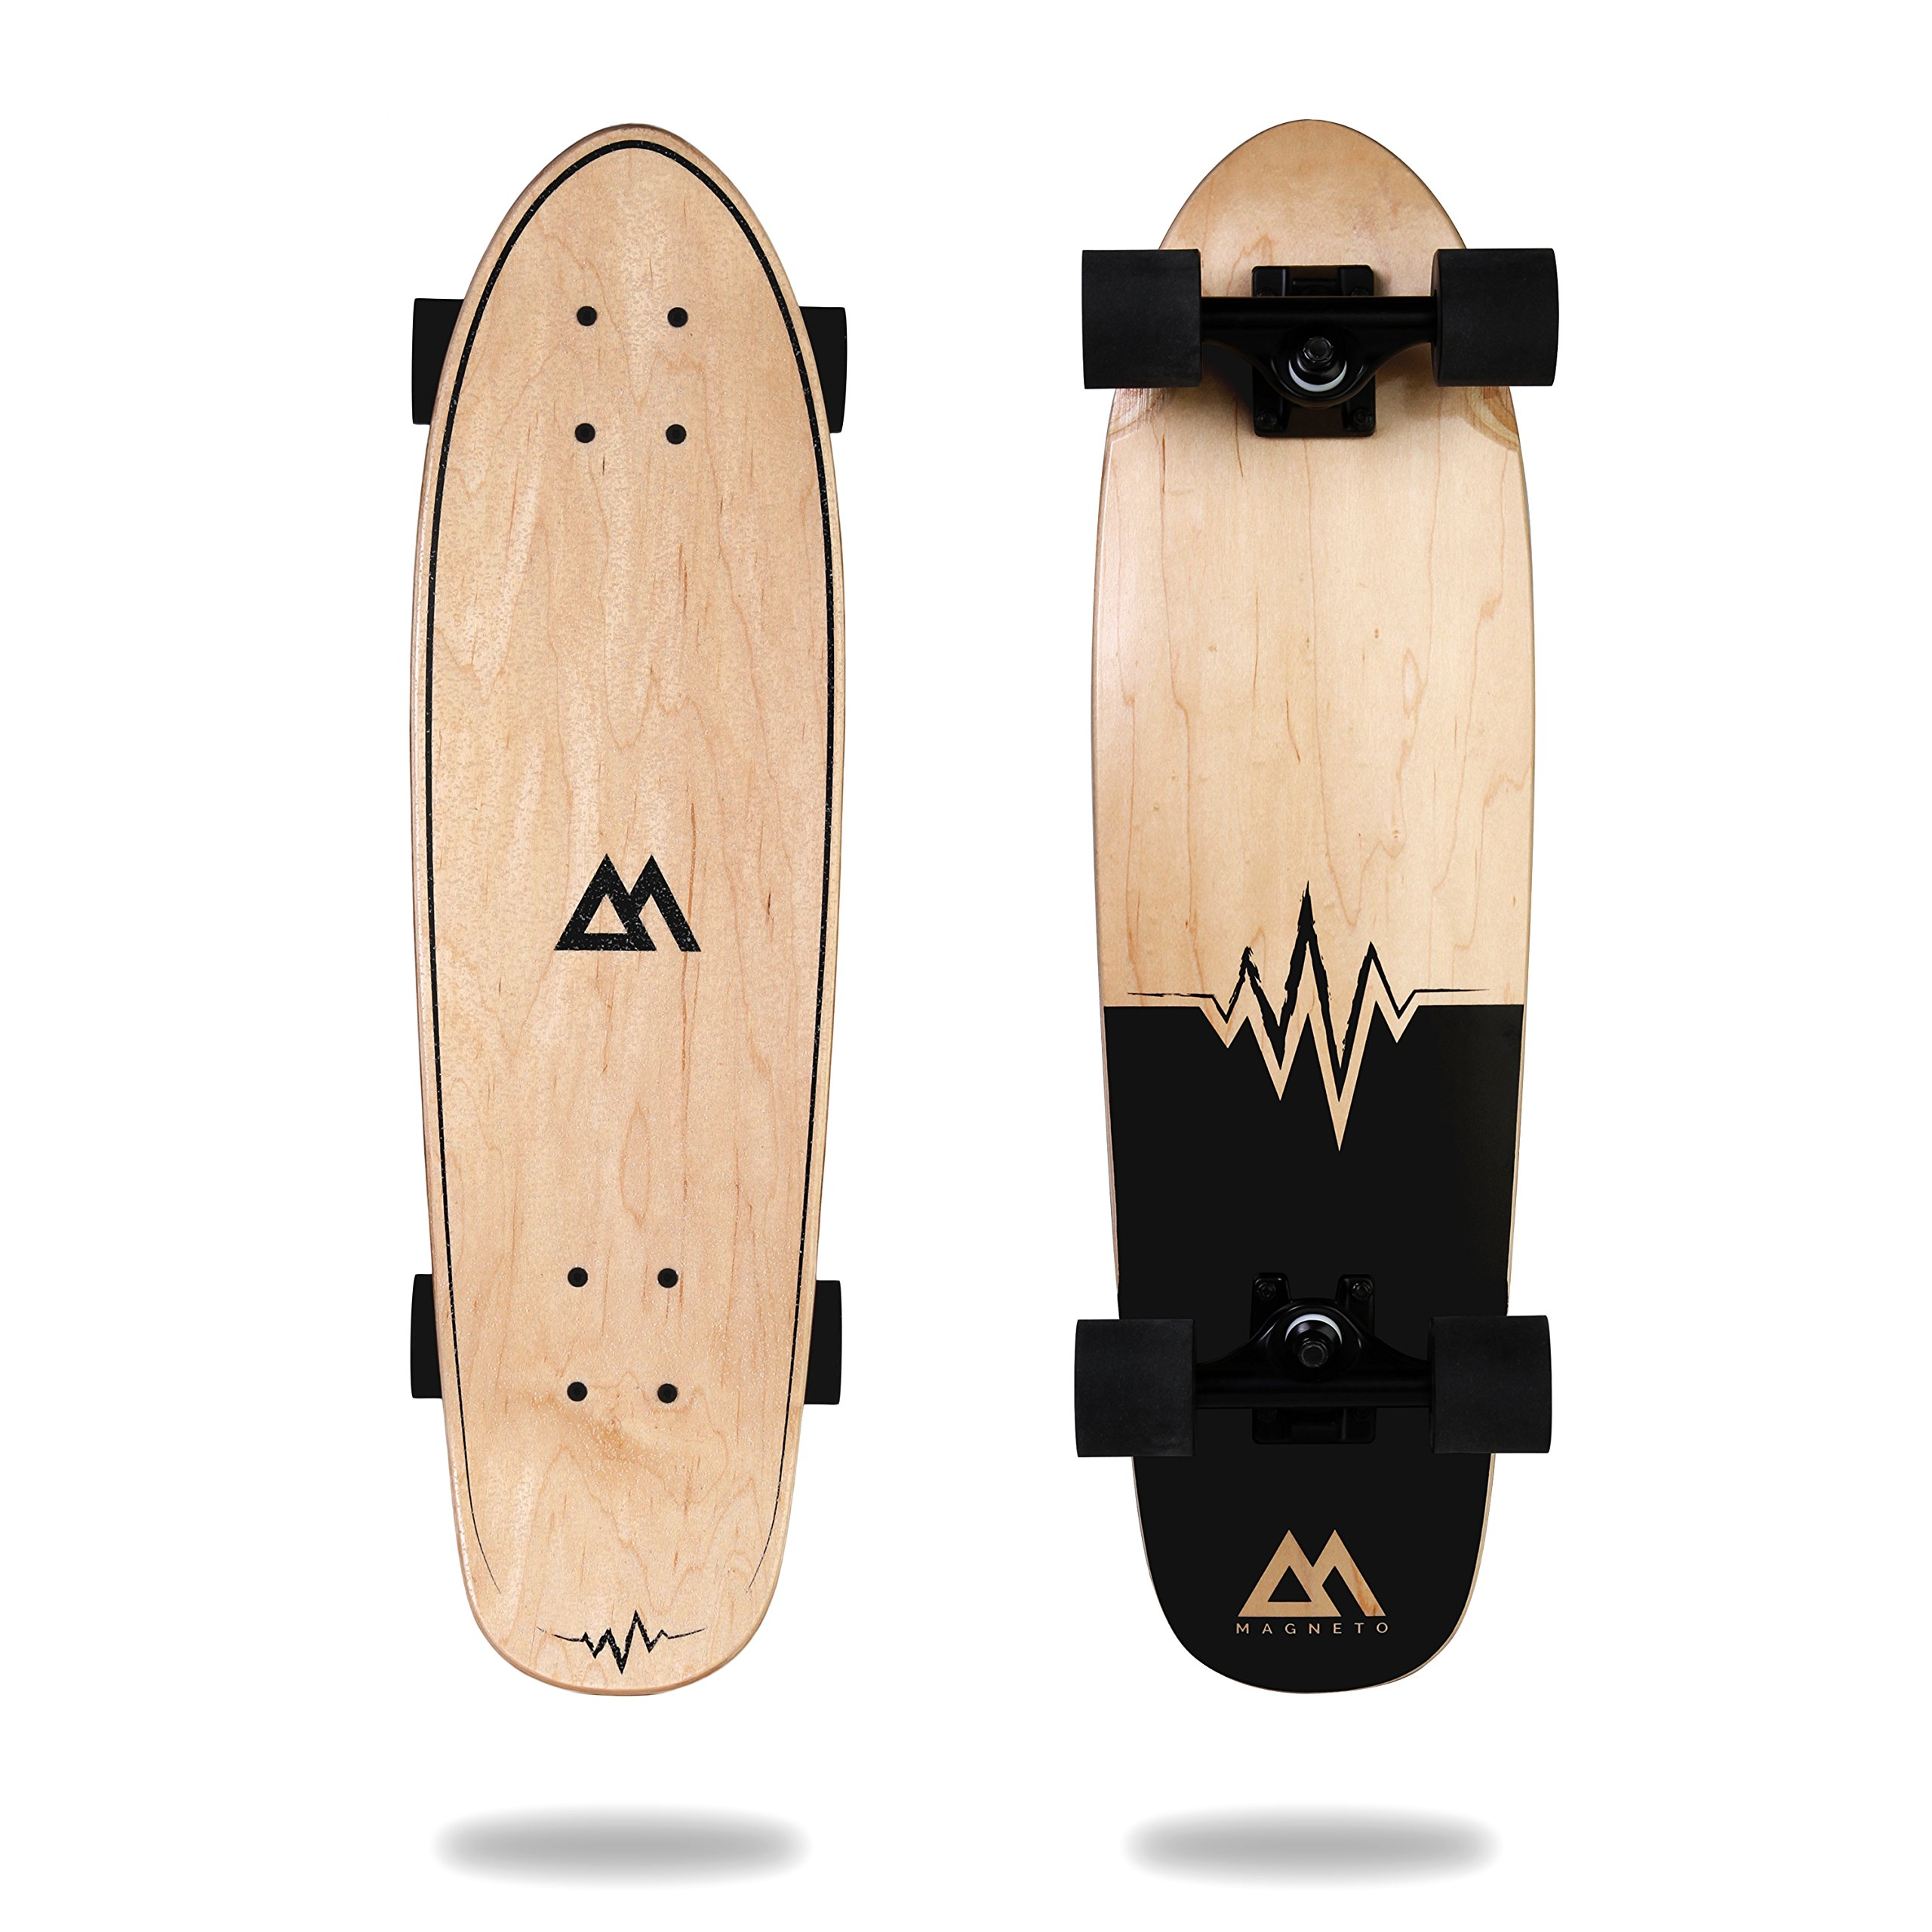 Magneto Mini Cruiser Skateboard Cruiser | Short Board | Canadian Maple Deck - Designed for Kids, Teens and Adults … (heart beat)